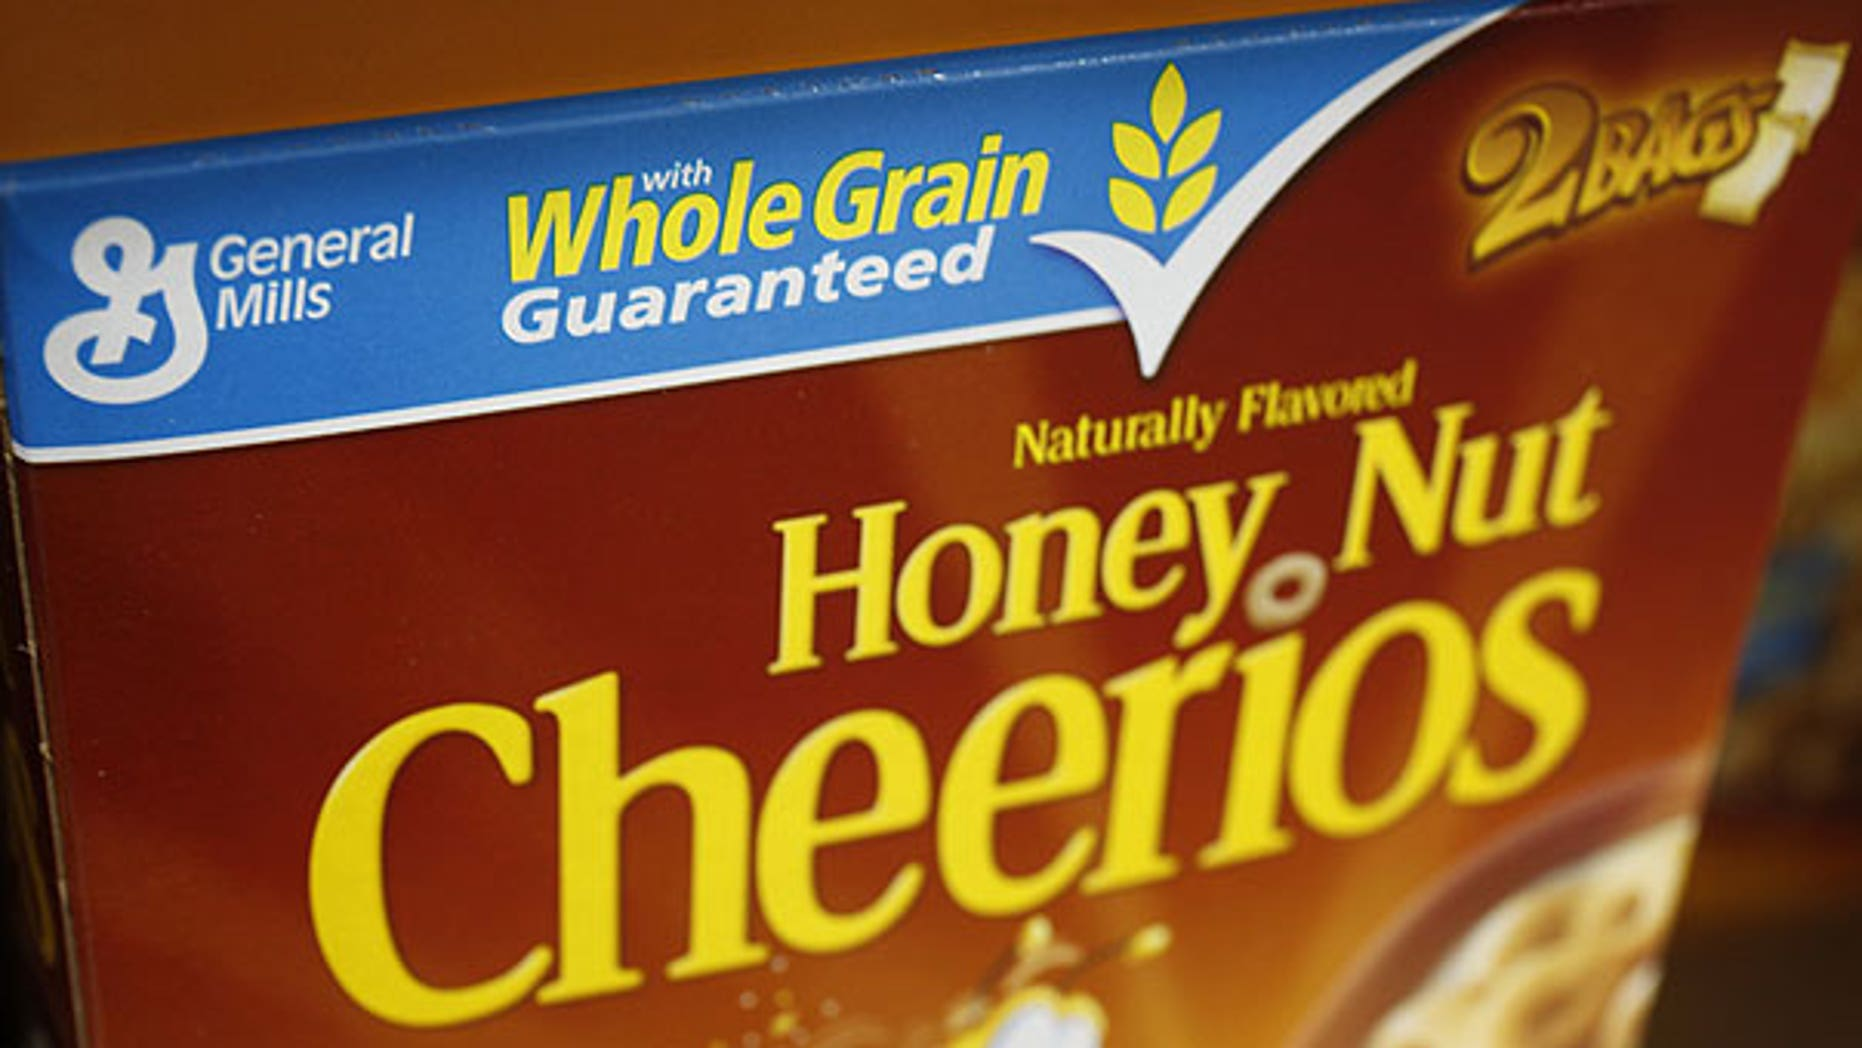 In this Dec. 8, 2009 photo, a box of Honey Nut Cheerios is seen on display at Costco in Mountain View, Calif. The nation's largest food companies say they will cut back on marketing unhealthier foods to children, proposing their own set of advertising standards after rejecting similar guidelines proposed by the federal government.